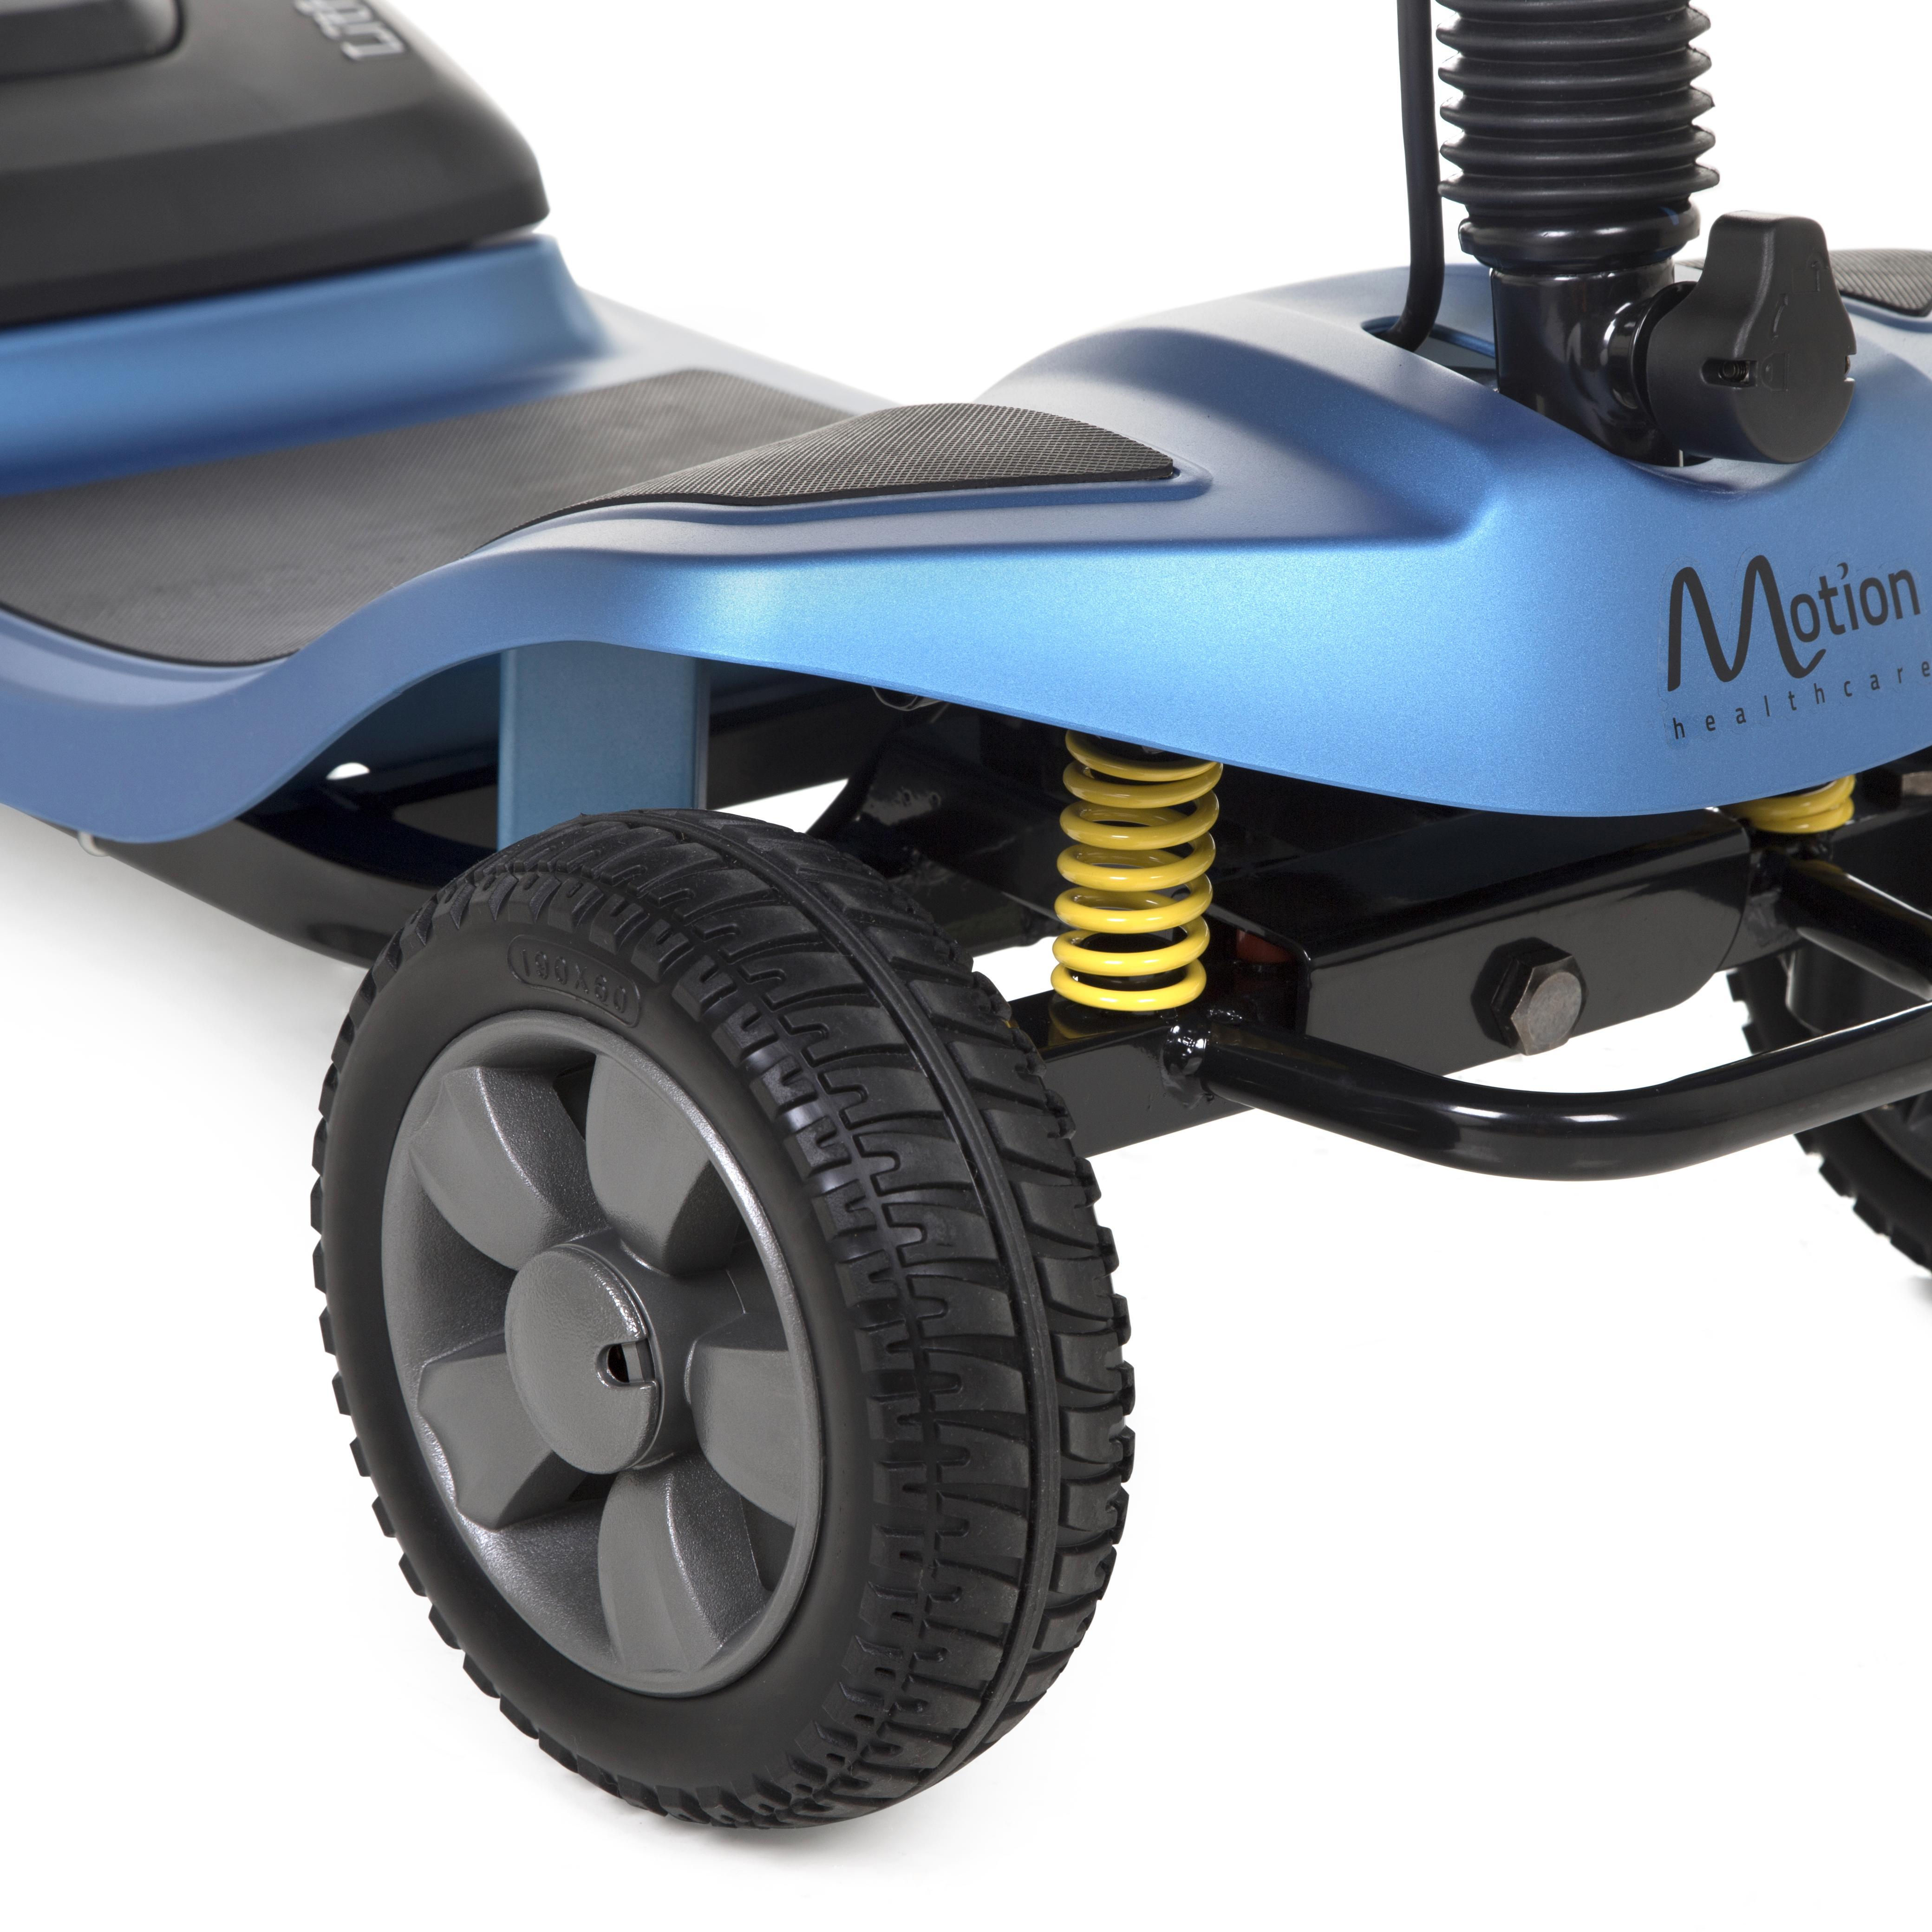 Lithilite Mobility Scooter in Blue